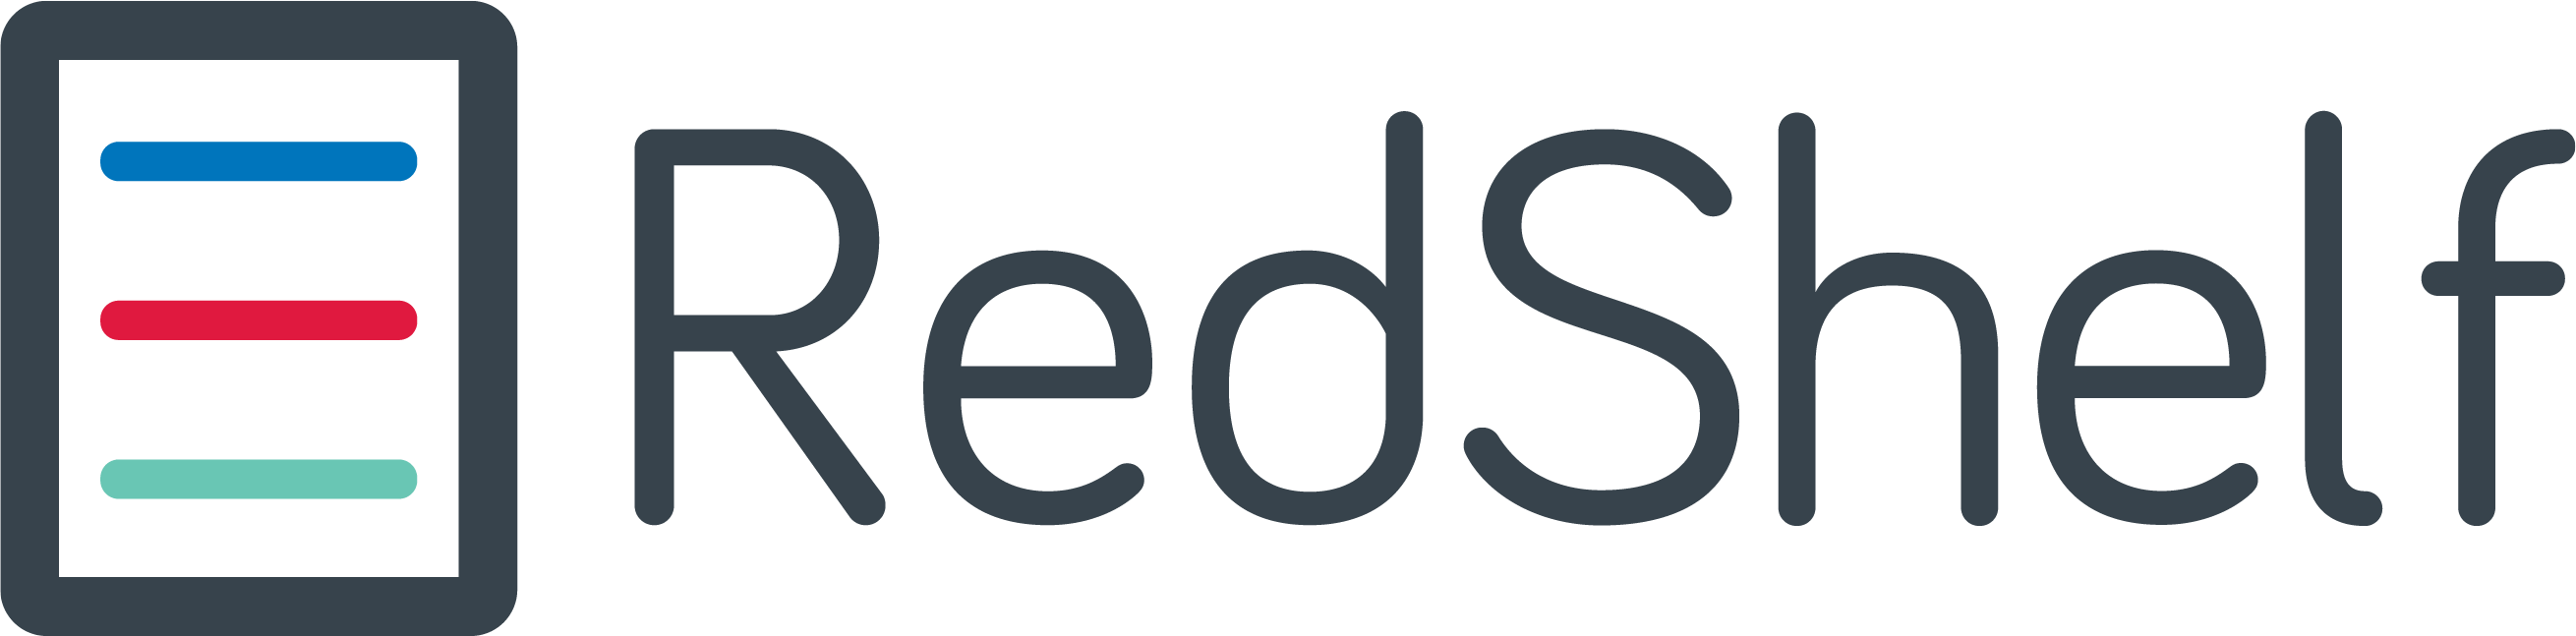 RedShelf streamlines the discovery and distribution of eBooks, eTextbooks, and other digital content for students using a browser-based platform.